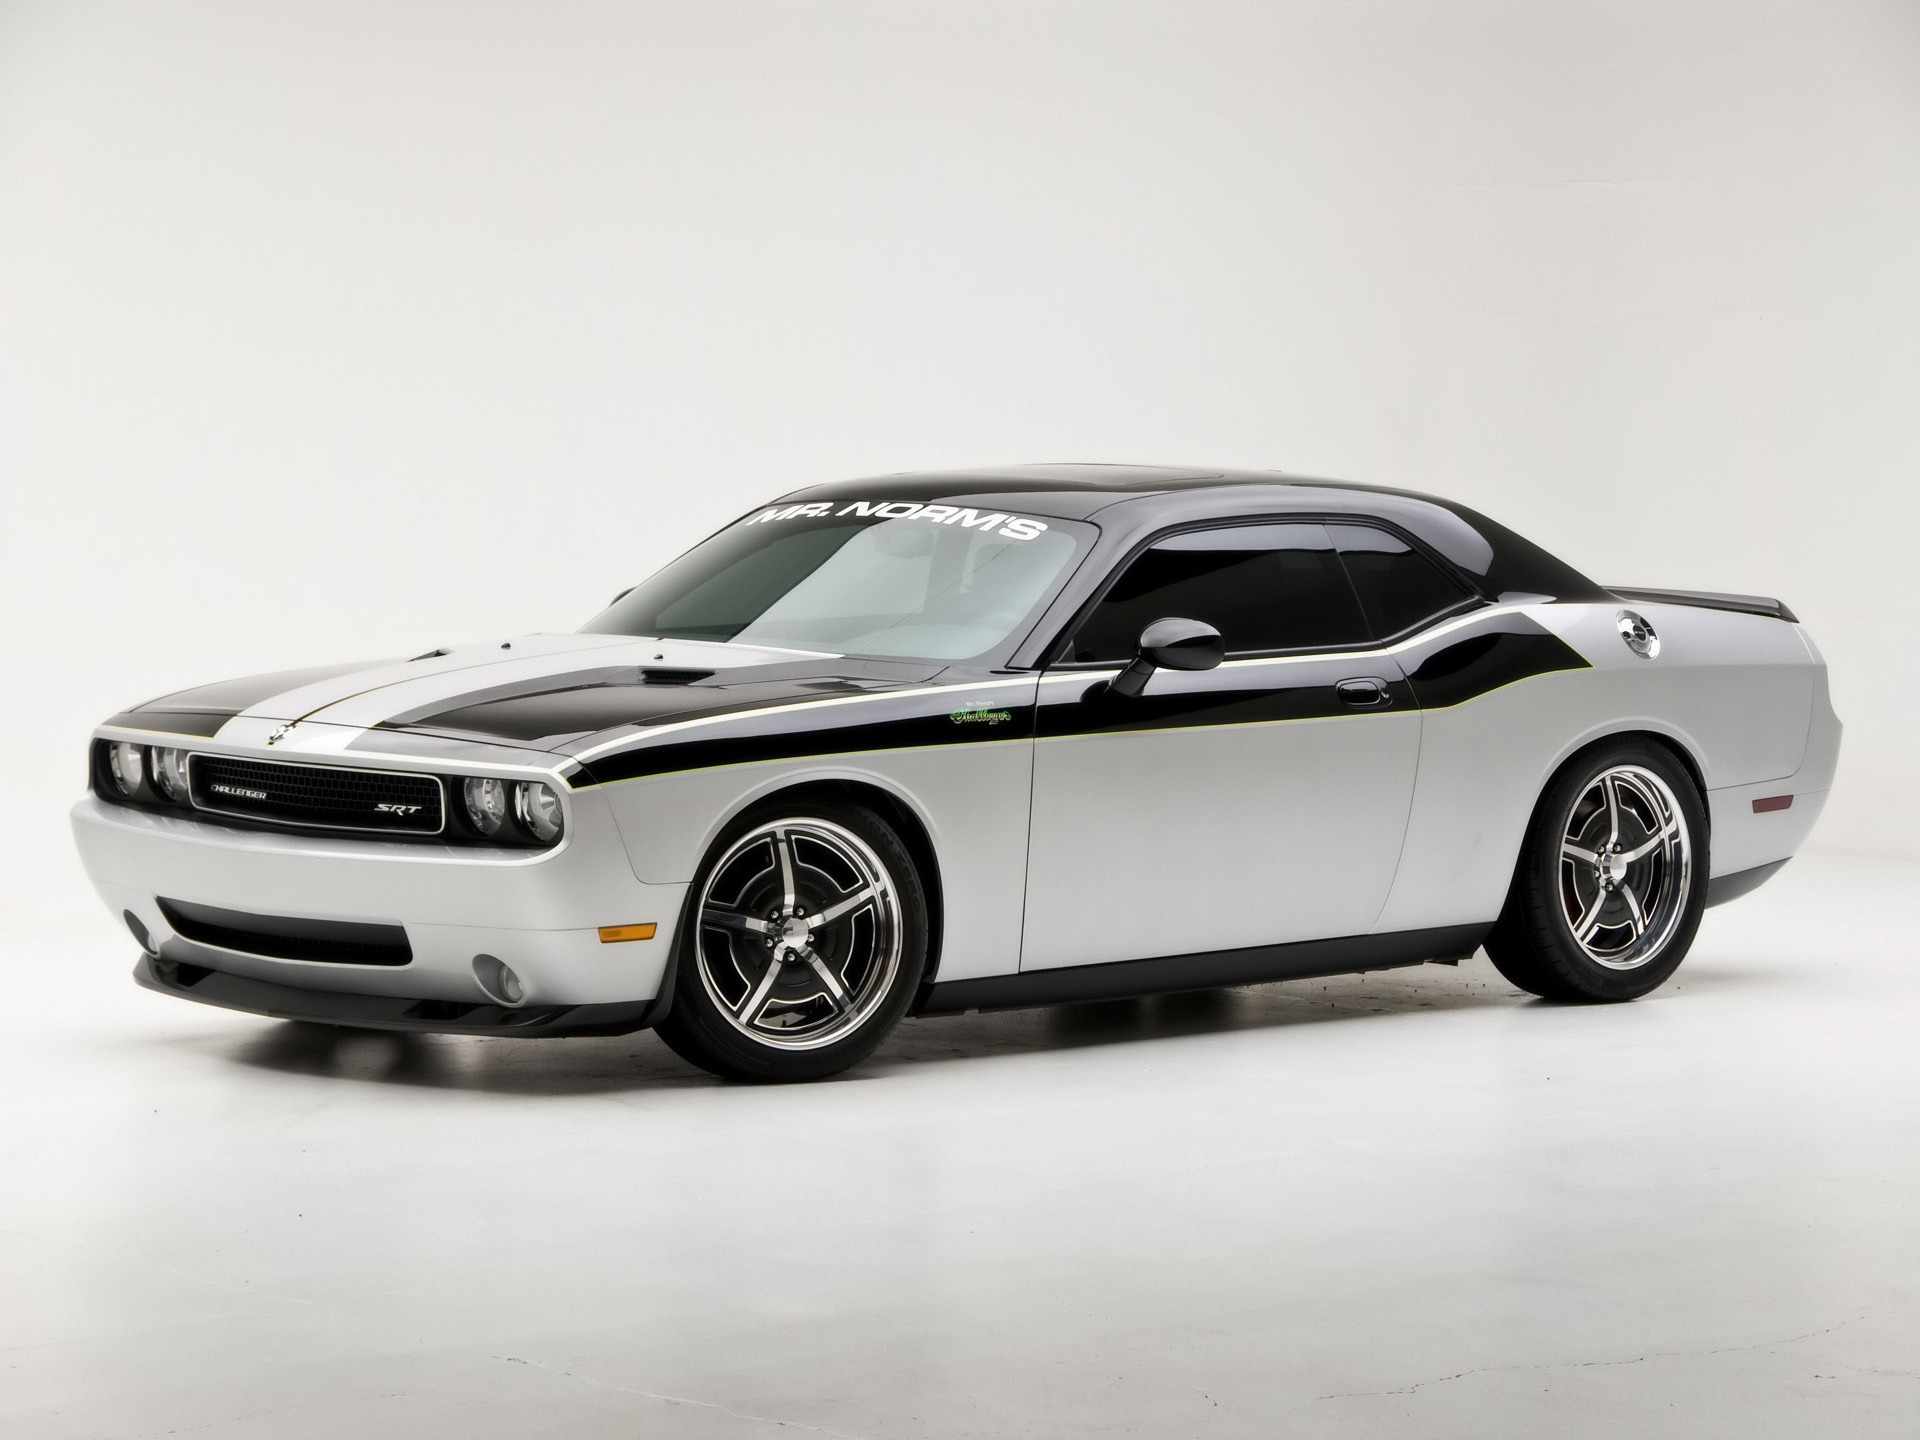 super dodge challenger wallpaper dodge cars wallpapers in jpg format